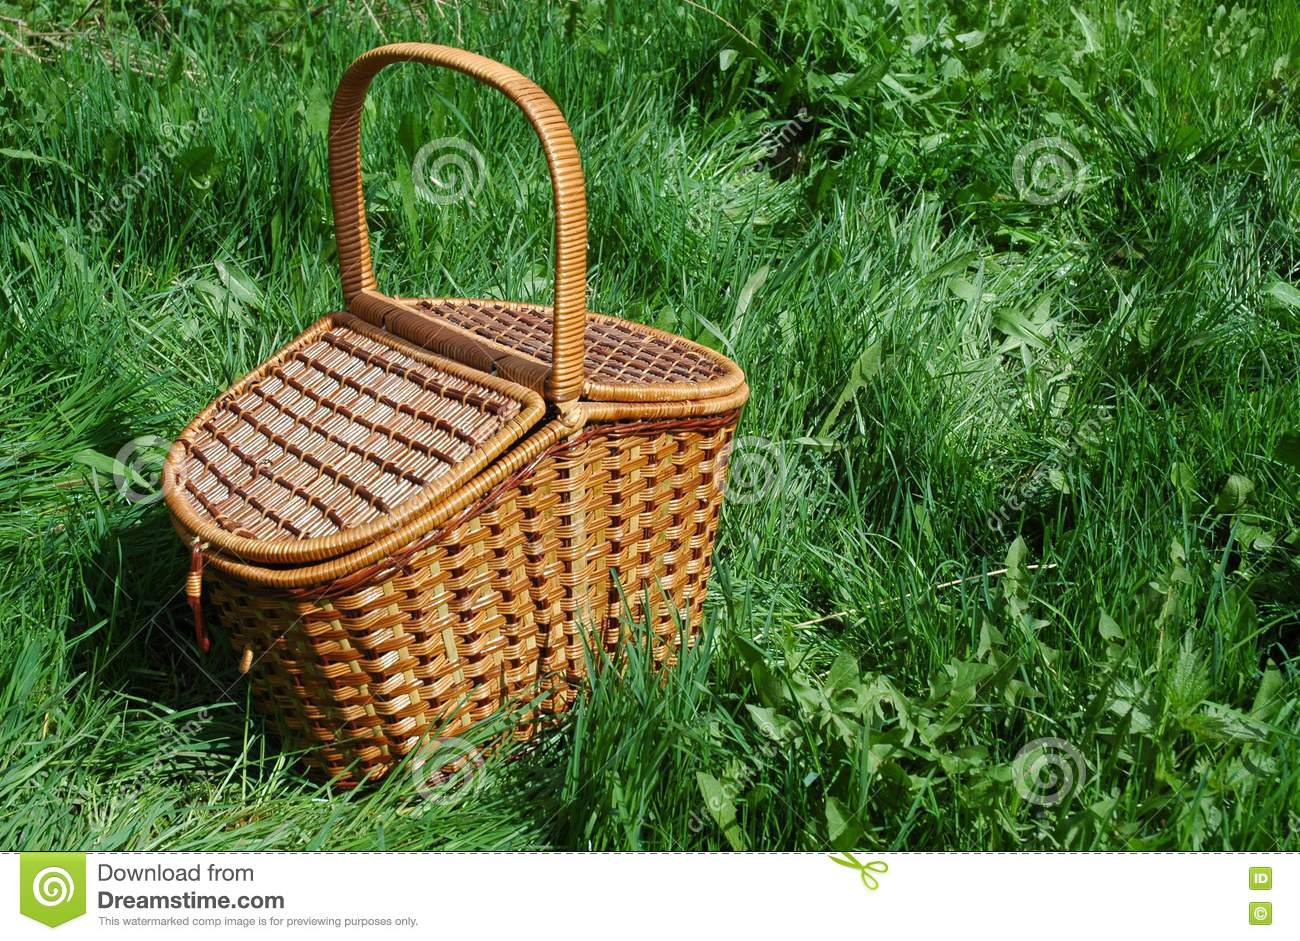 The Basket For Picnic Picture Image 331575